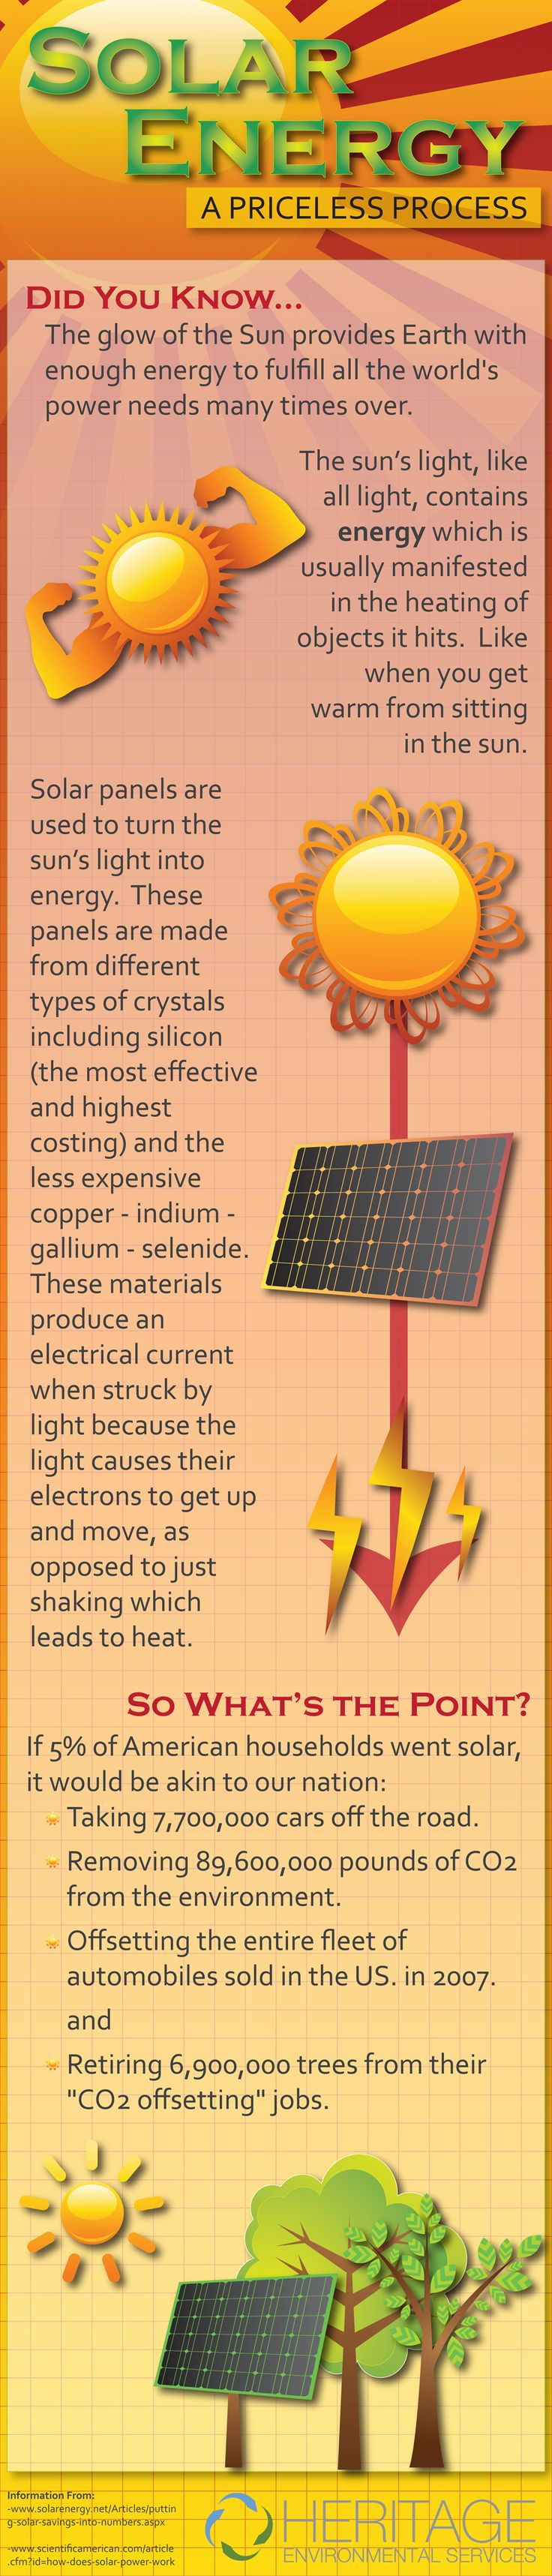 Solar Energy, easy basics to help convince people to join the fun.   I have not checked the statements for accuracy. But in general, the benefits are evident.